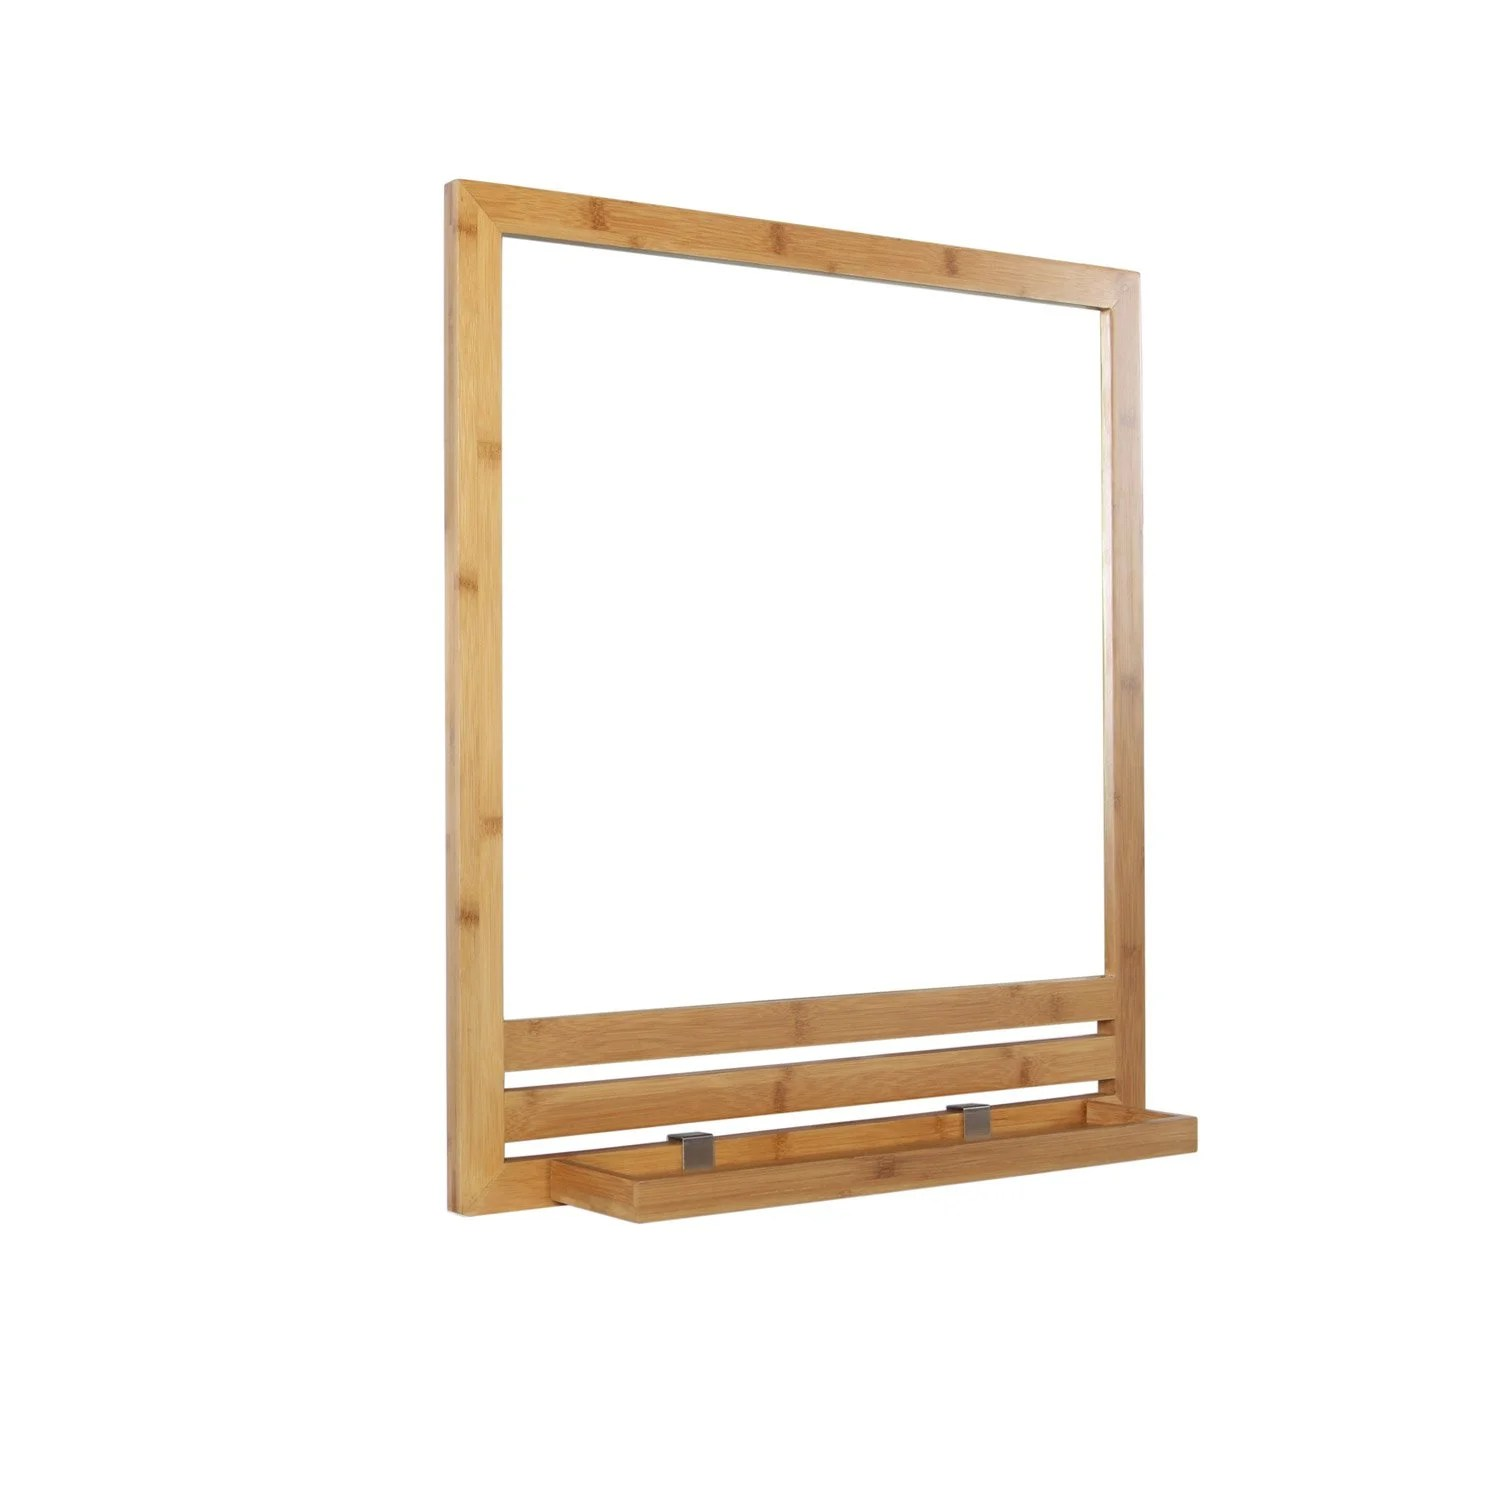 Tablette tiroir castorama etagere with tablette tiroir - Leroy merlin tablette murale ...